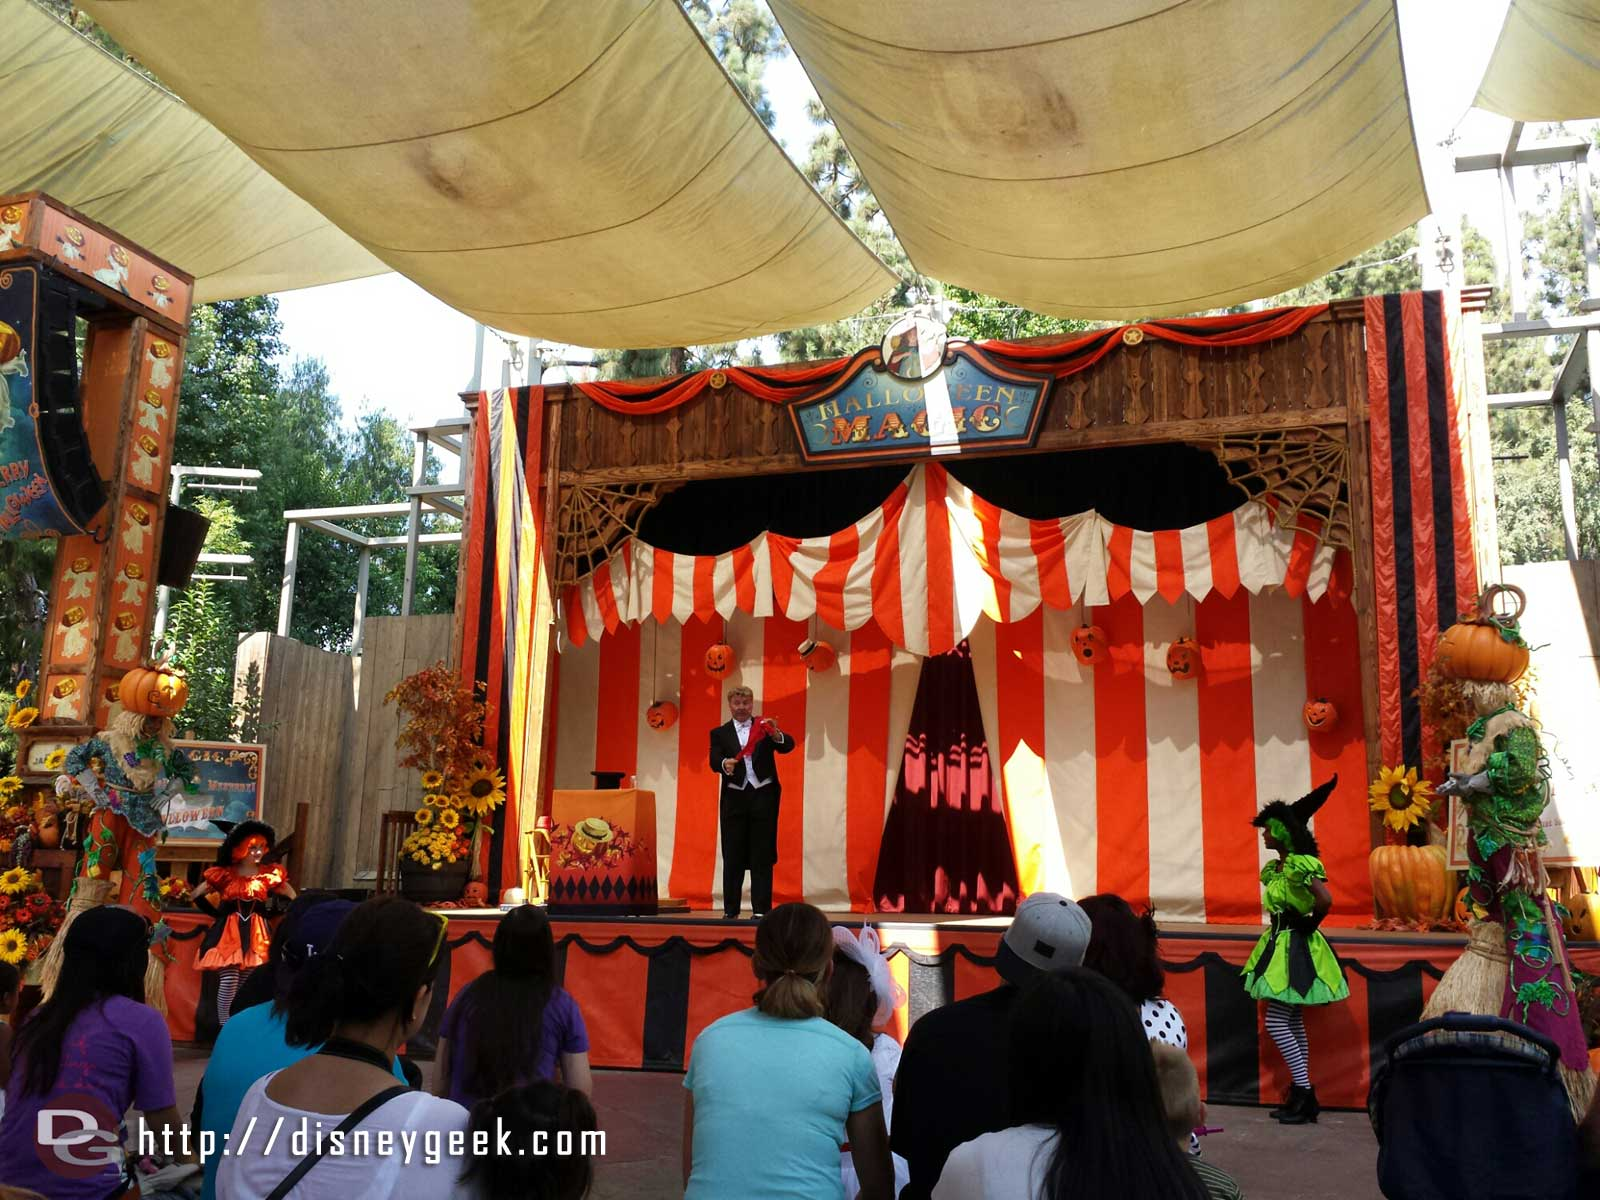 A Magician this year instead of the Haunted Hillbillies at the Halloween Carnival